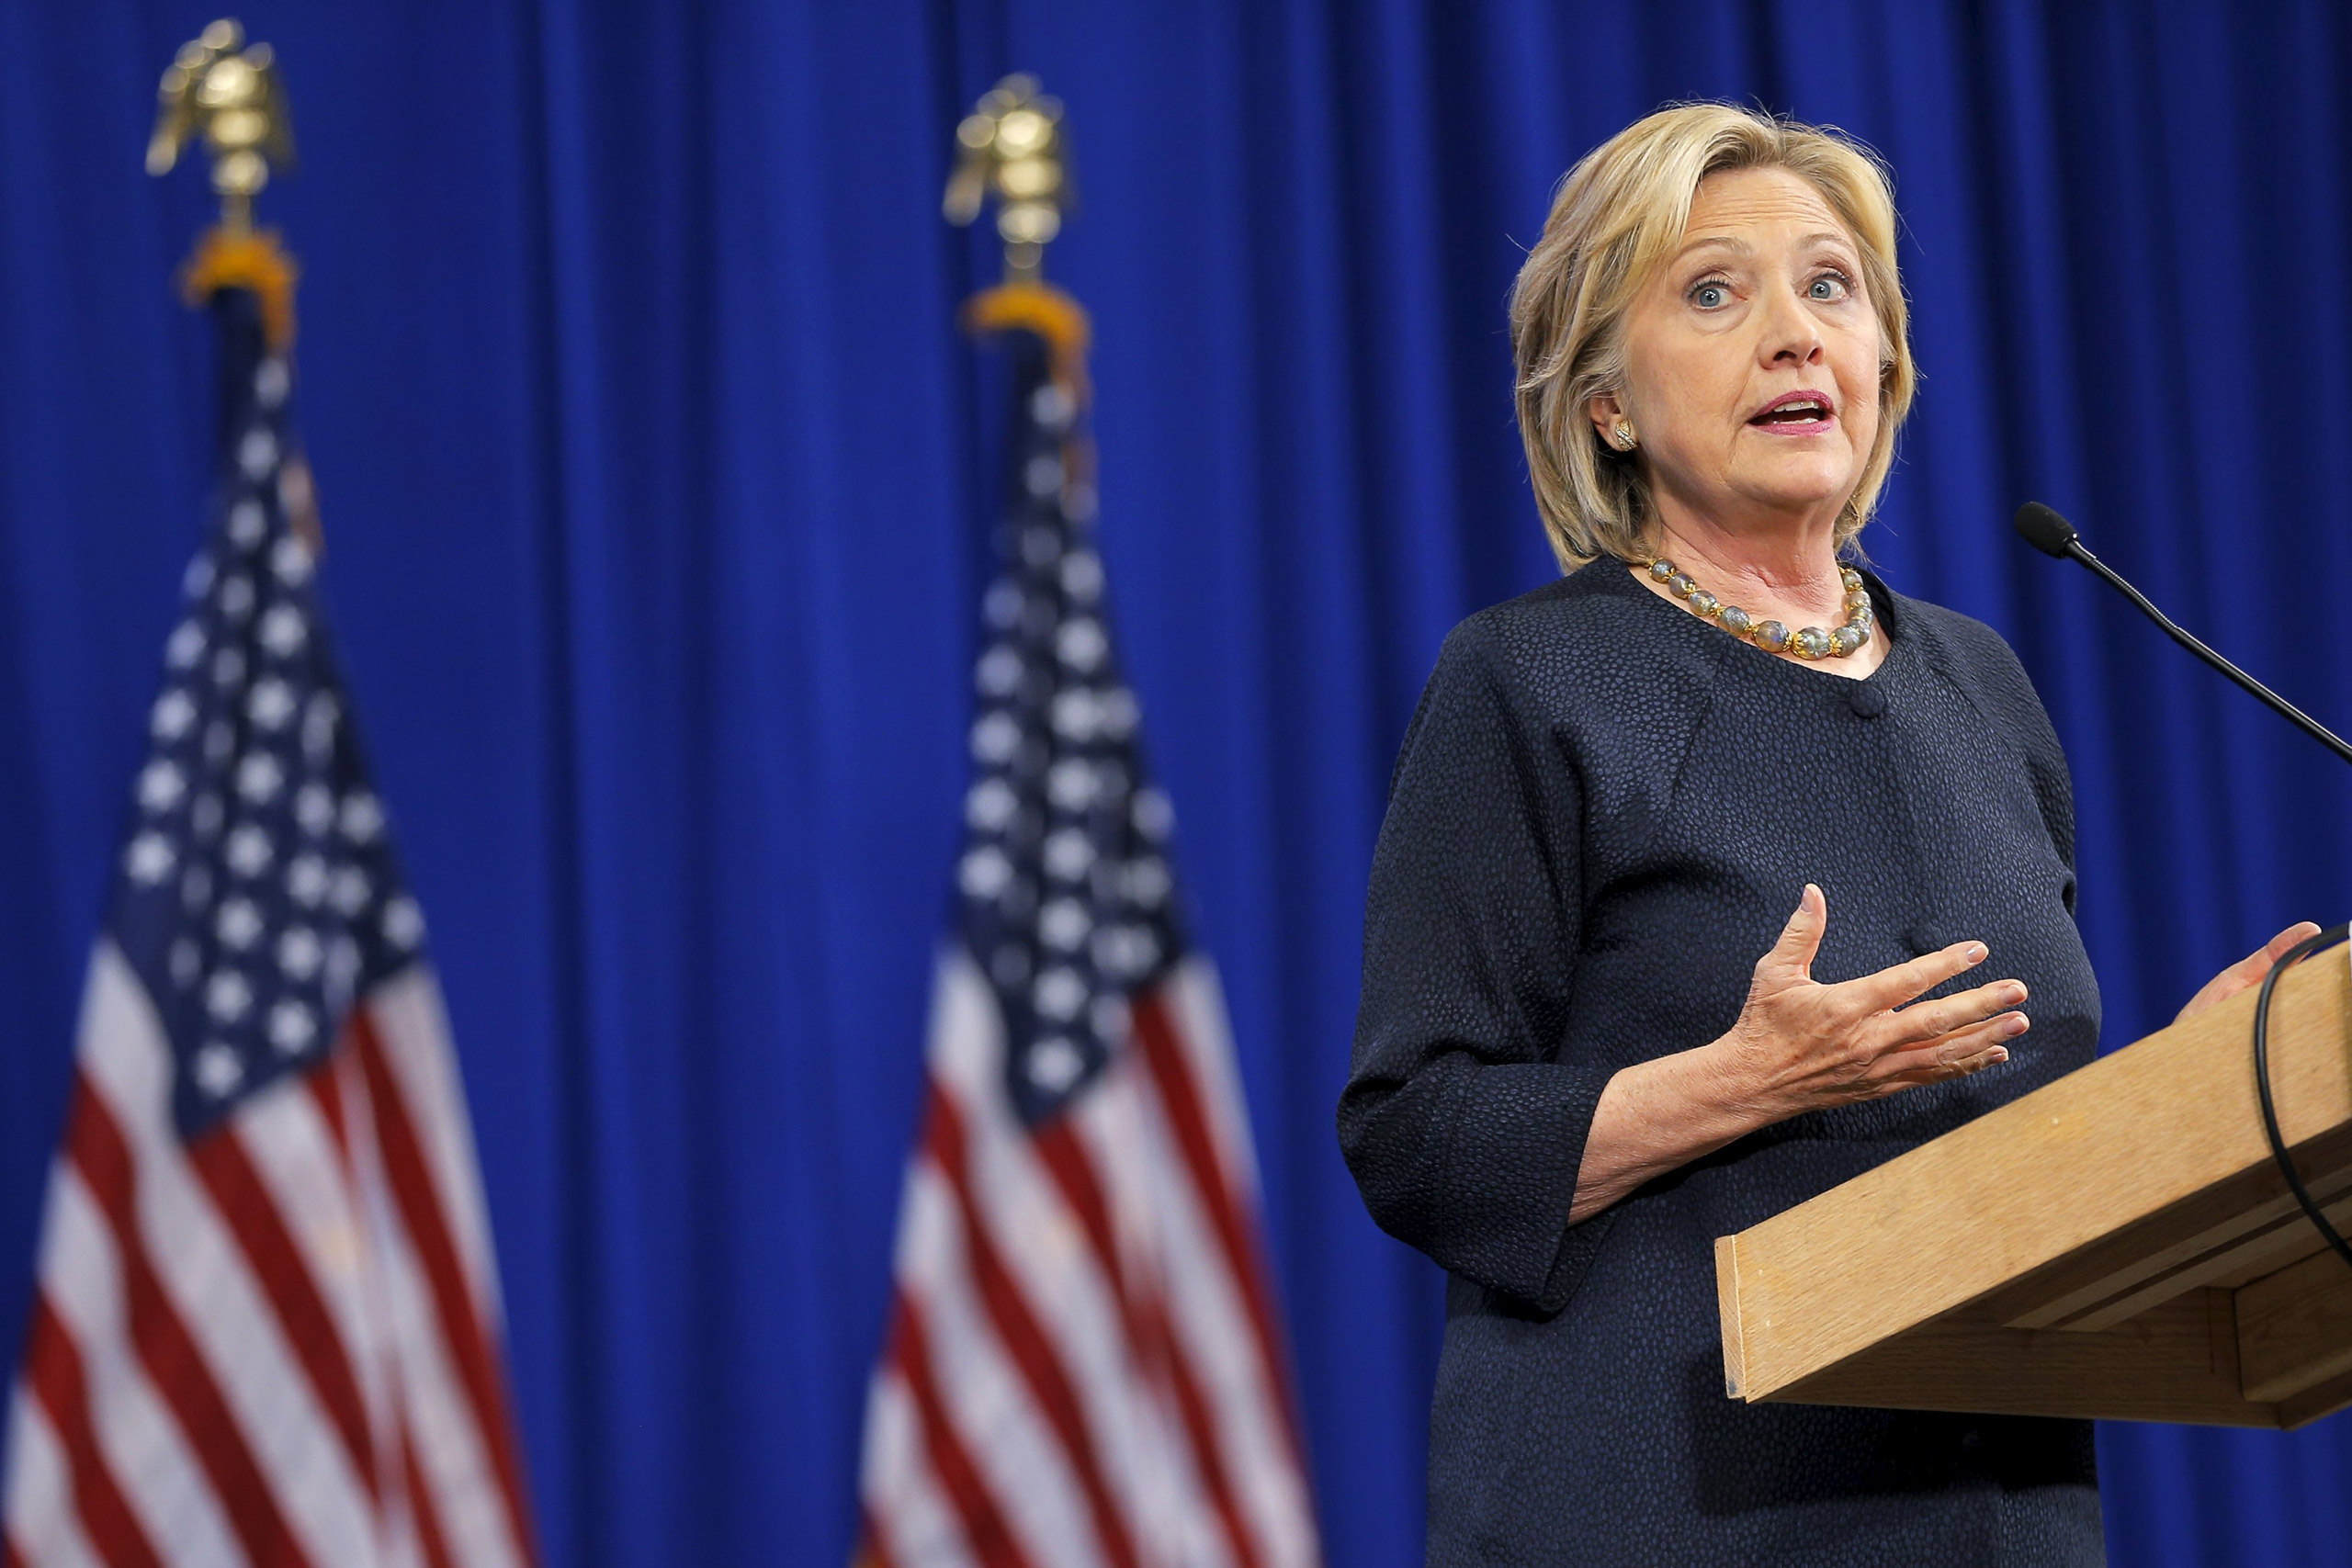 Hillary Clinton speaks at the New Hampshire Democratic Party State Convention in Manchester, New Hampshire, on Sept. 19, 2015.